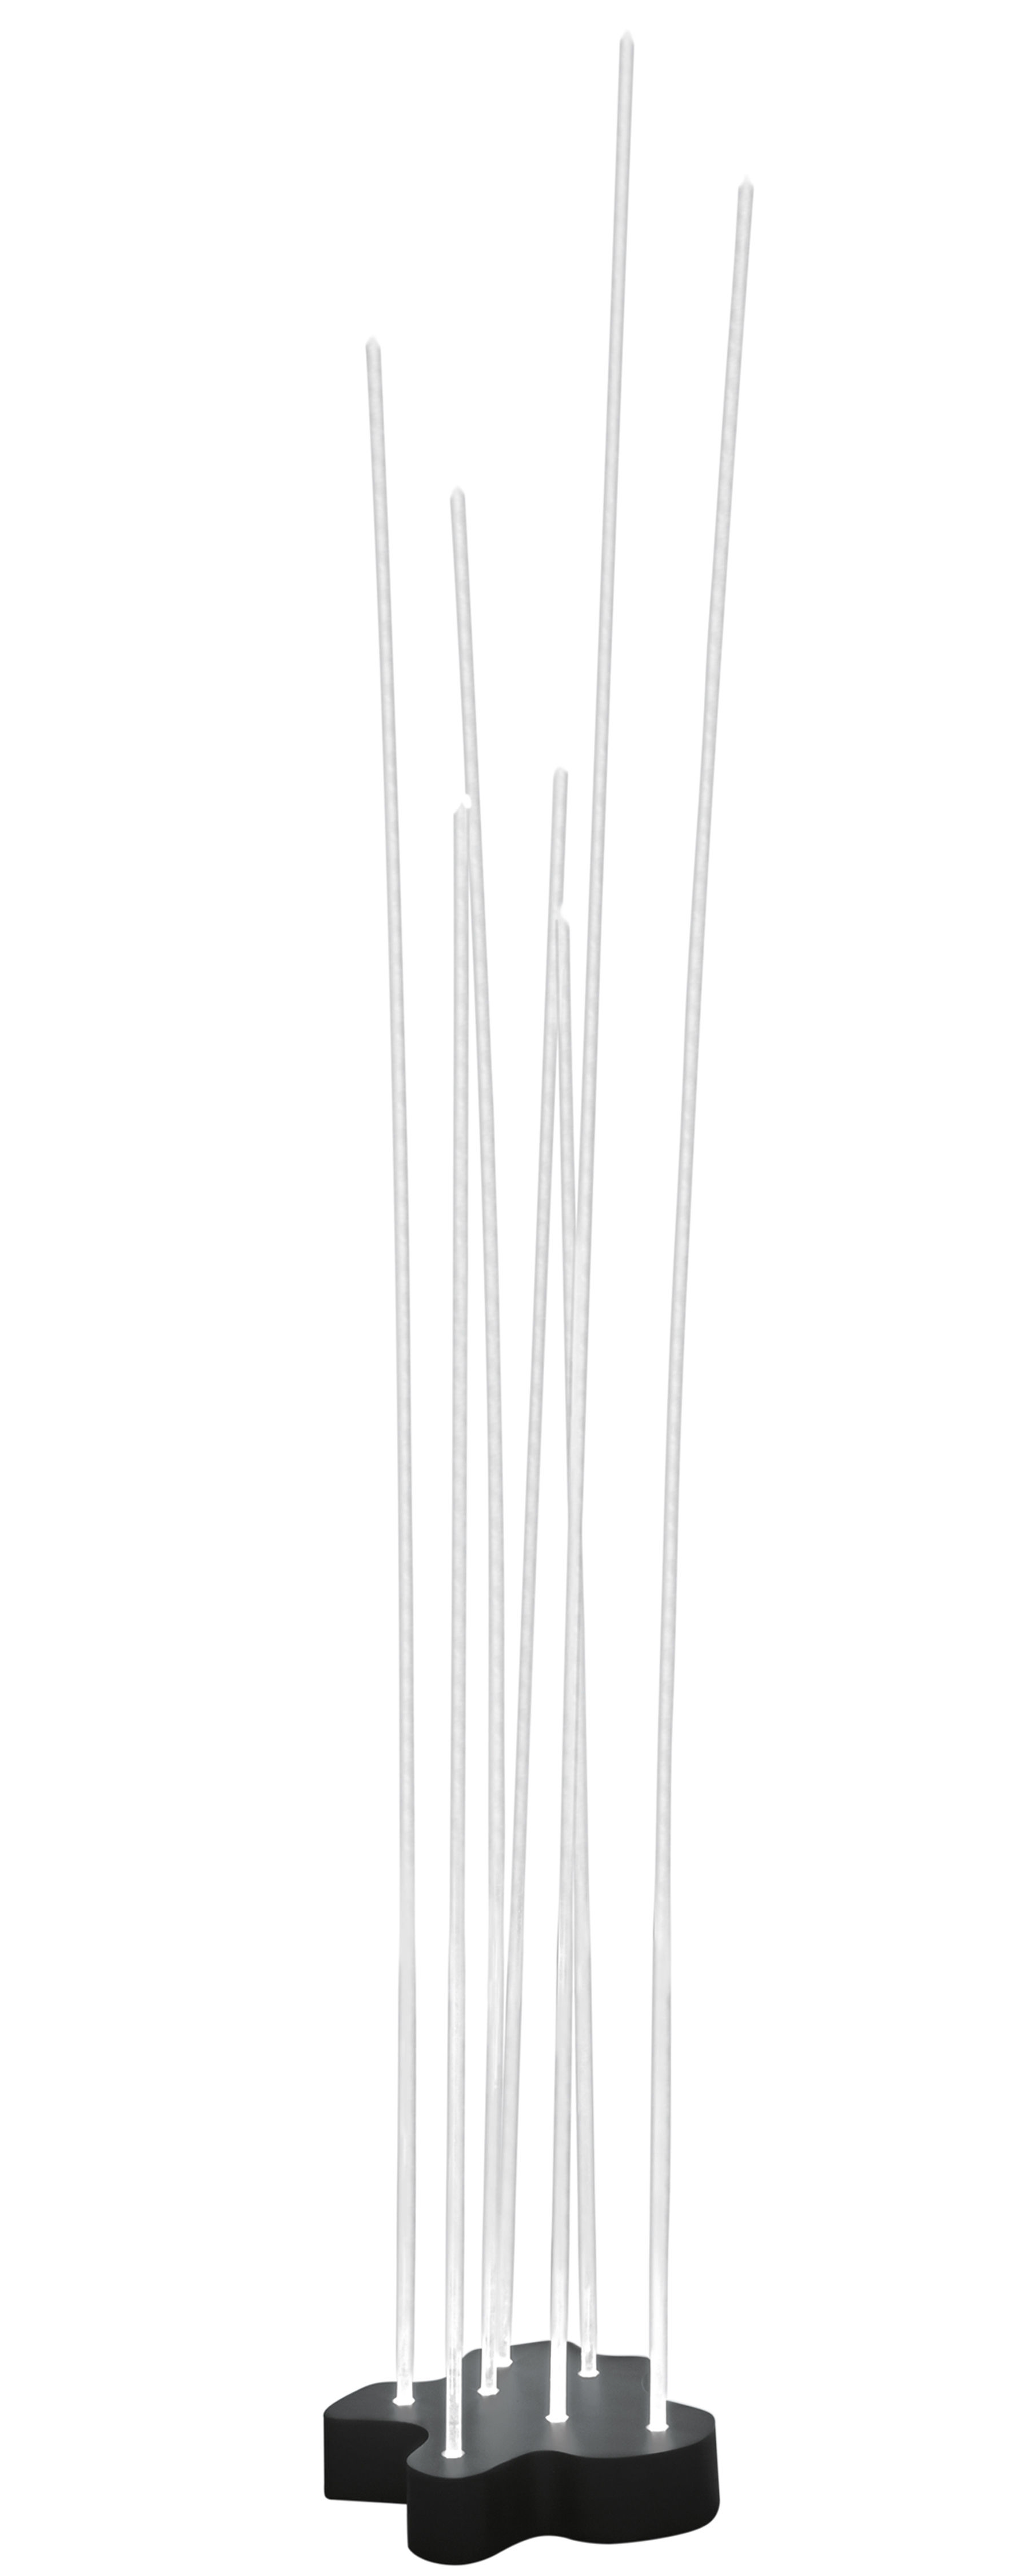 Lighting - Floor lamps - Reeds LED Floor lamp by Artemide - White / Anthracite base - Painted stainless steel, PMMA